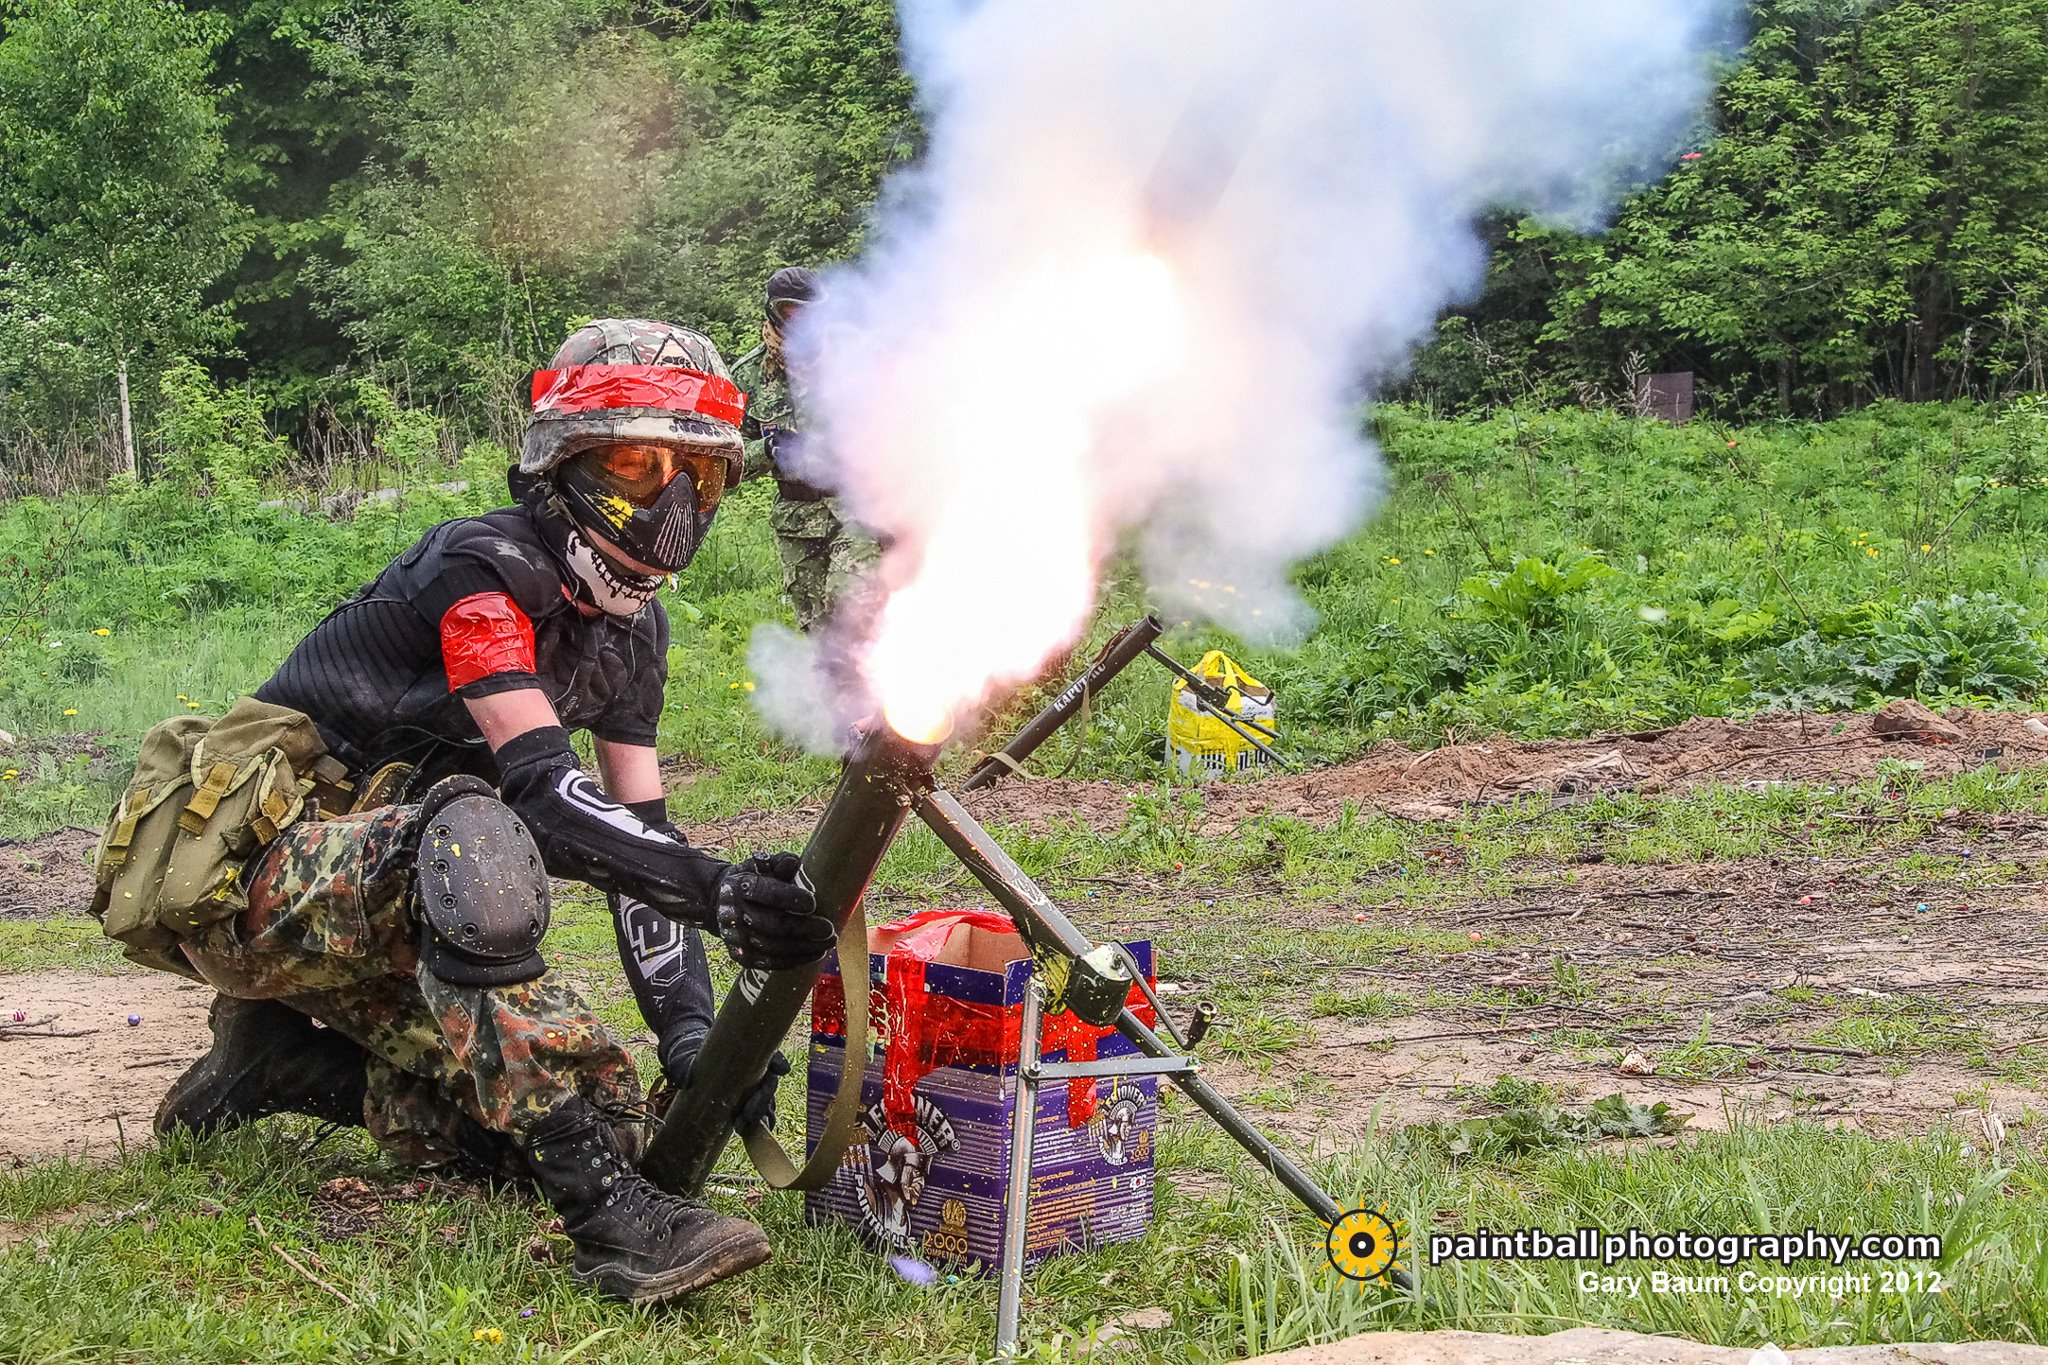 Big Paintball Maneuvers: Battle of Borodino, Largest Single-Day Scenario Event in Paintball